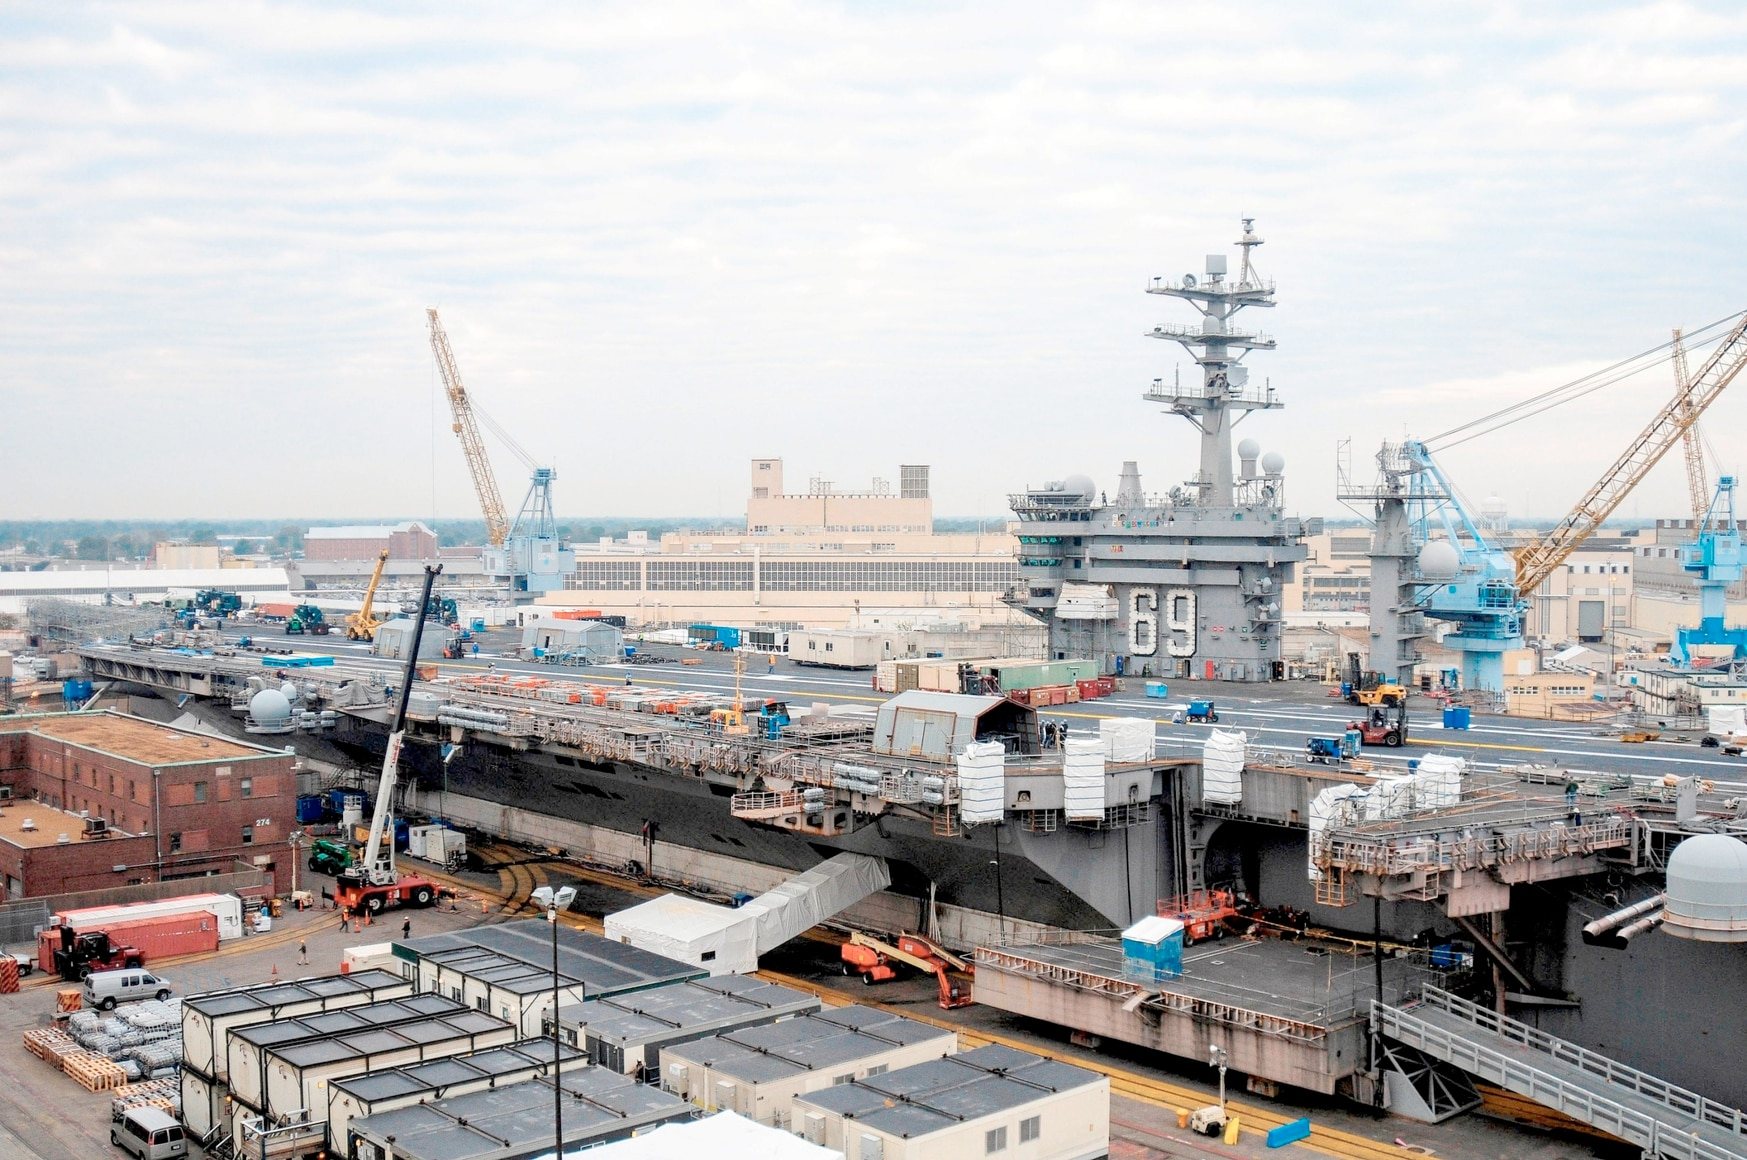 The aircraft carrier USS Dwight D. Eisenhower sits in dry dock in 2013 after a double-pump deployment to the Middle East. (MCSN Wesley Breedlove/U.S. Navy)